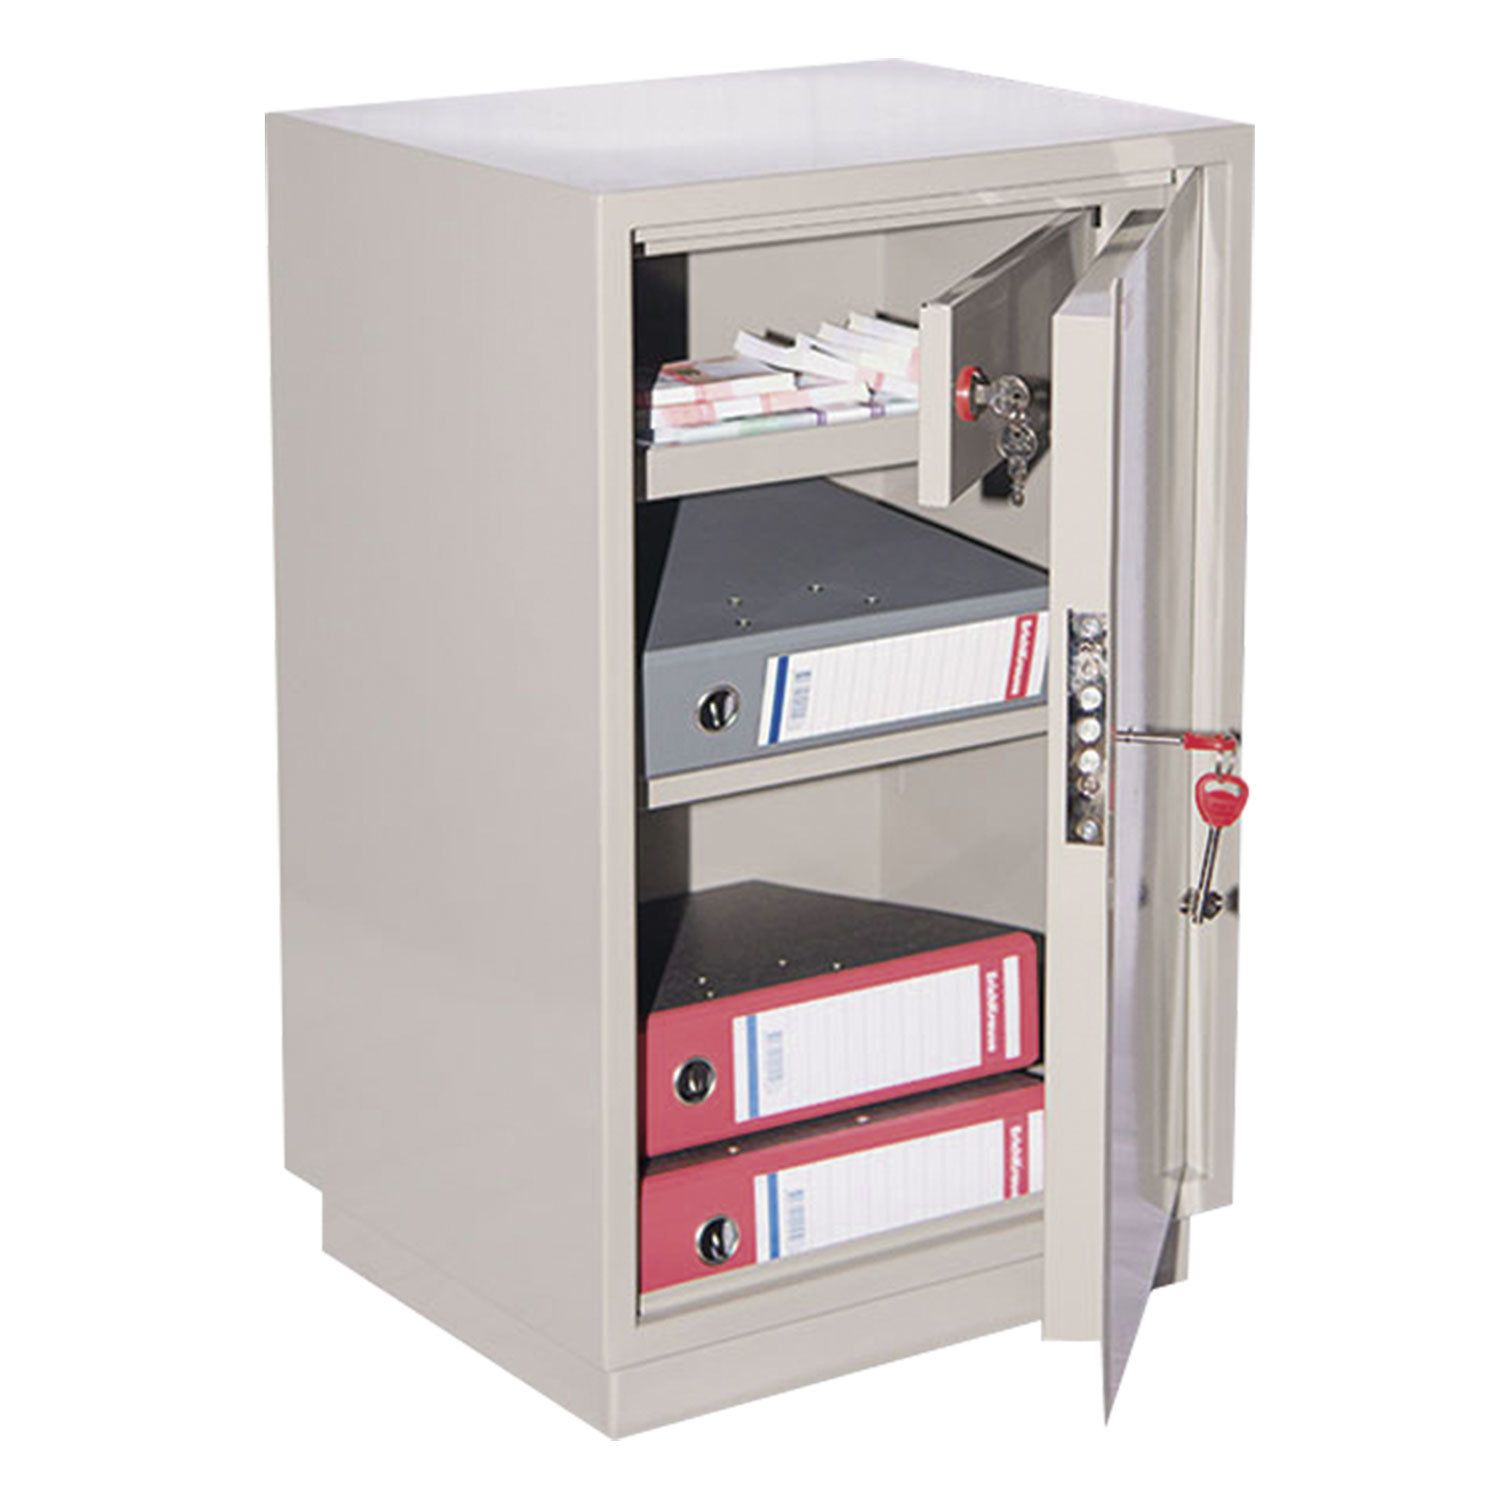 Cabinet metal for documents KBS-011T, 660 x420 x350 mm, 19 kg, welded